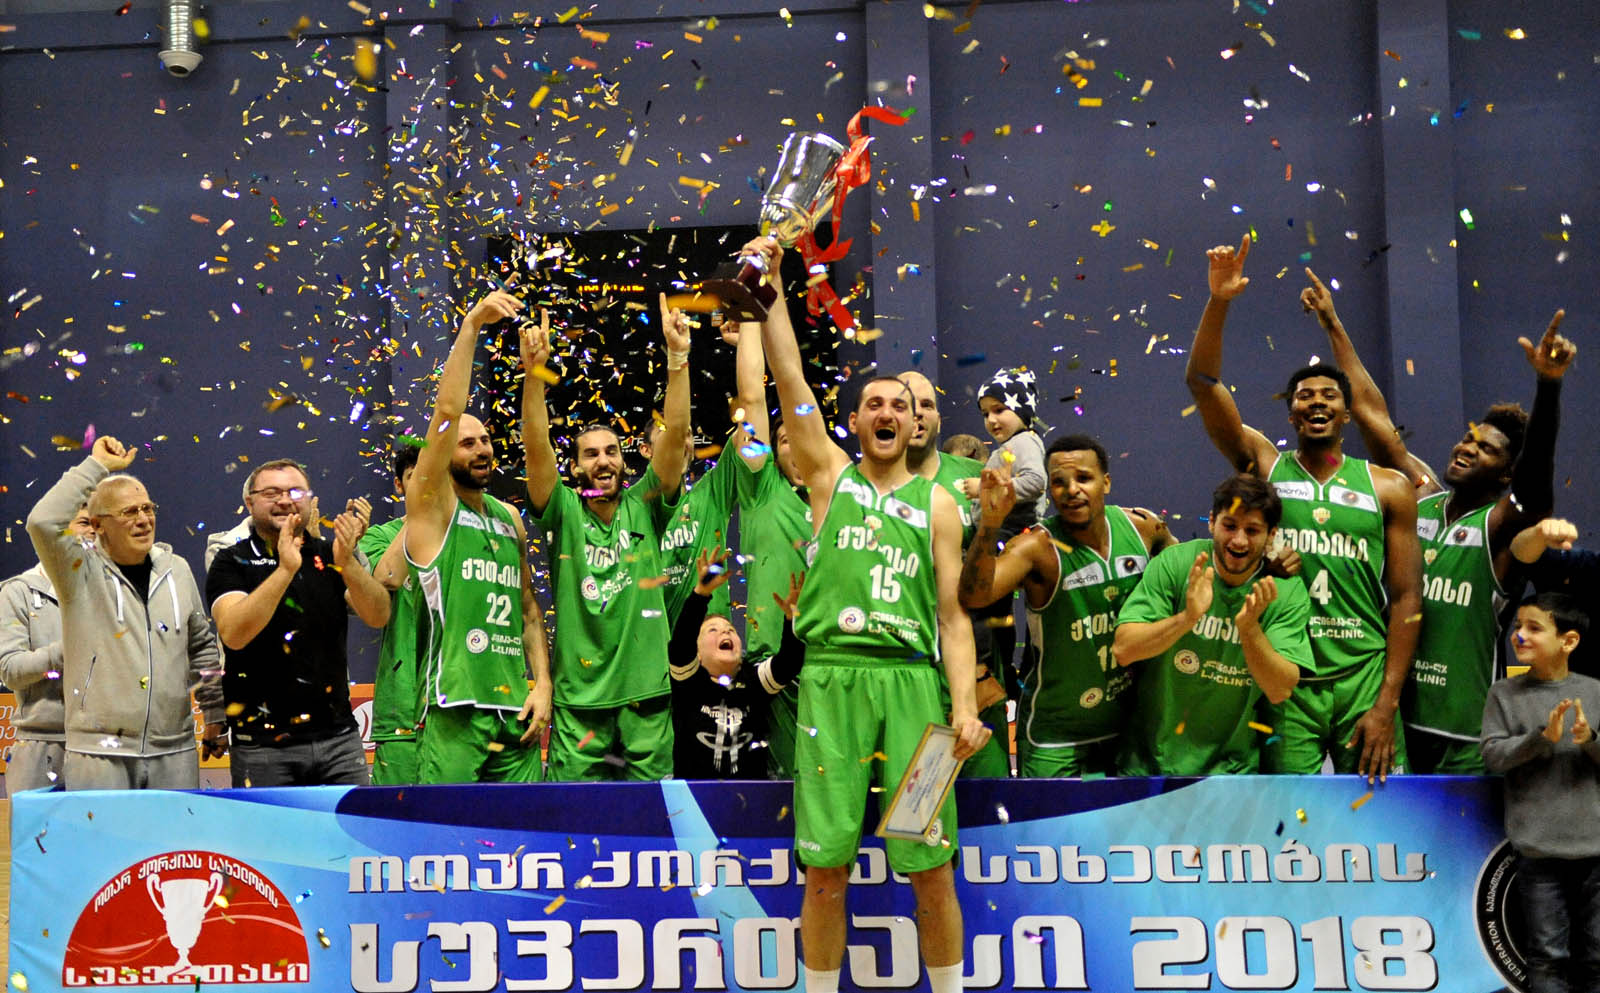 Kutaisi became the owner of the SuperCup